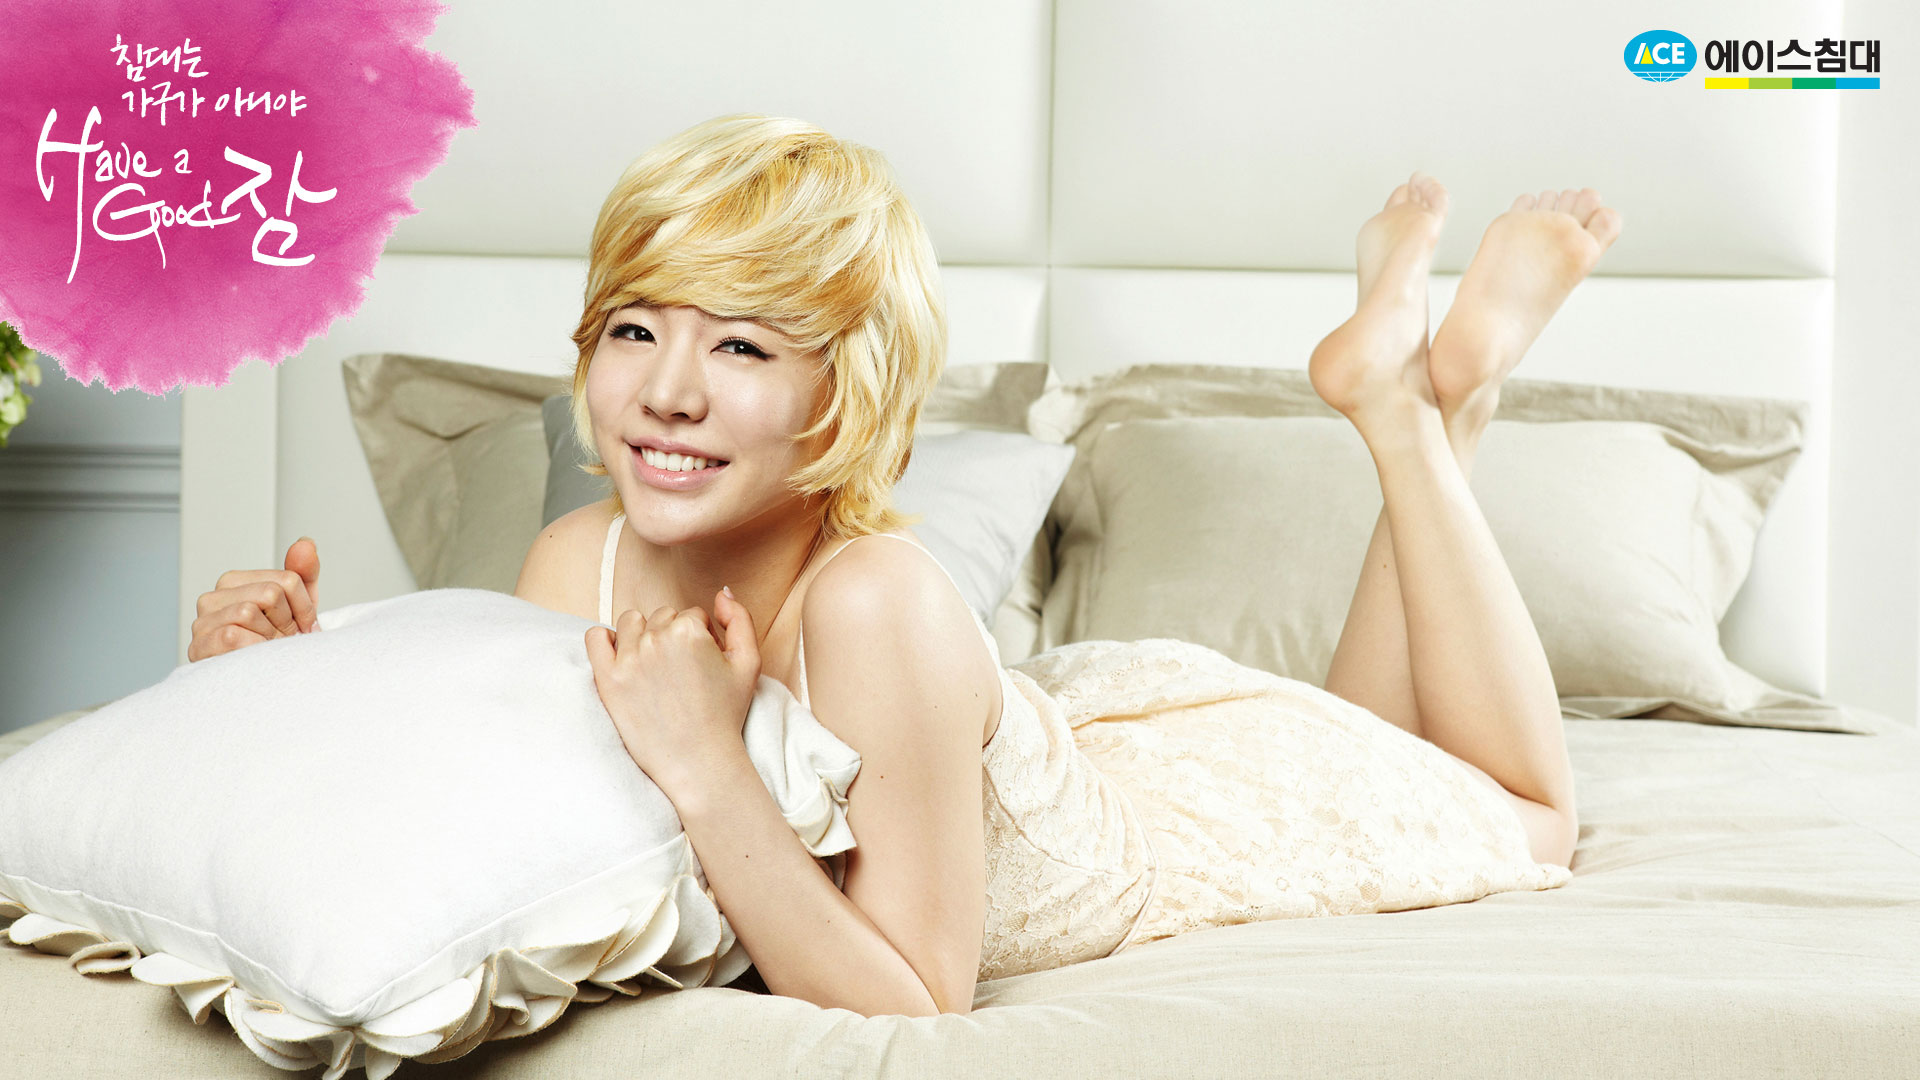 SNSD Sunny Ace Bed wallpaper